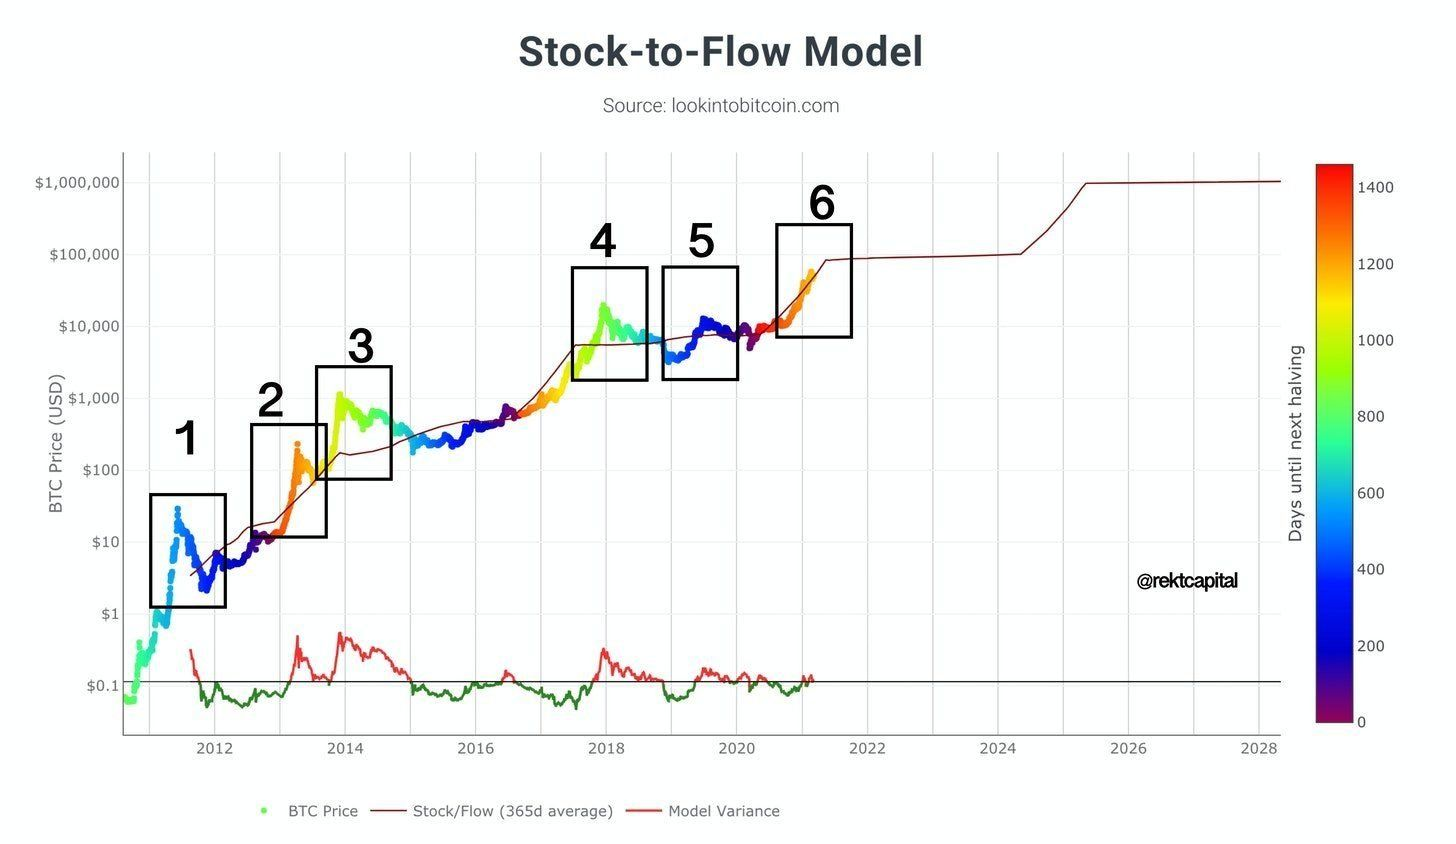 /stock-to-flow-deviation-6-xs1234ng feature image